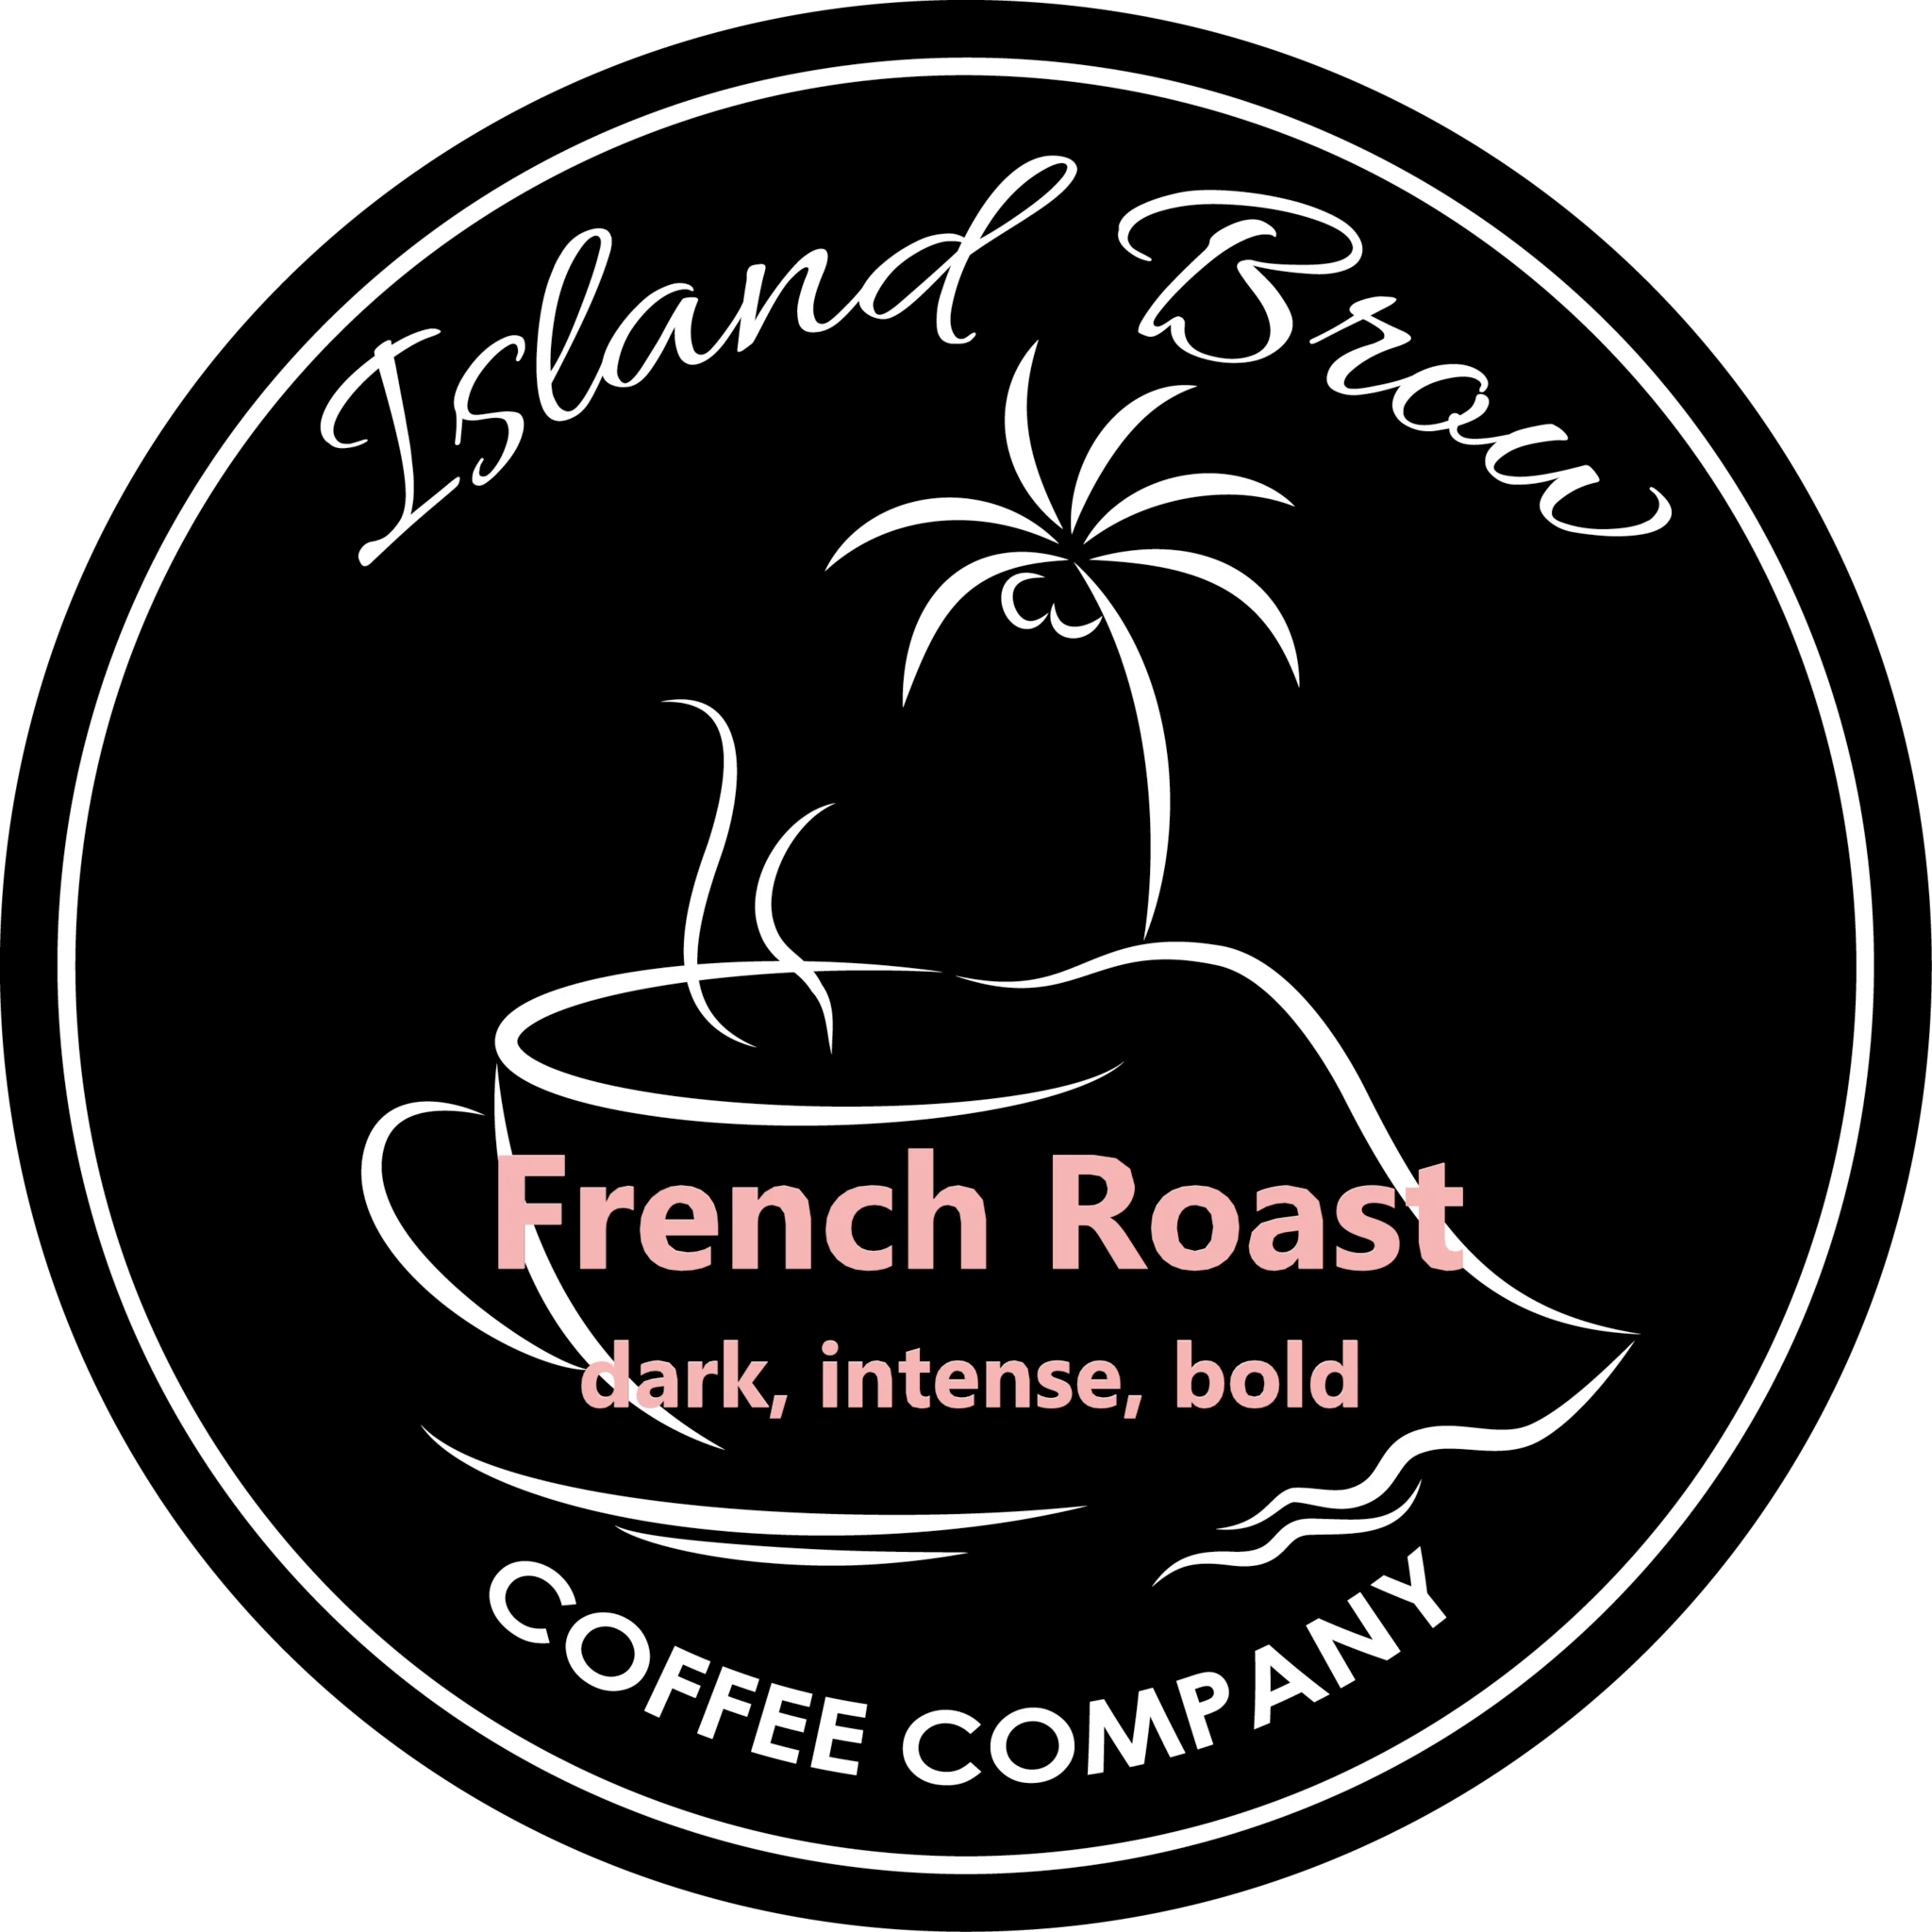 French Roast from Island Brow Coffee Company